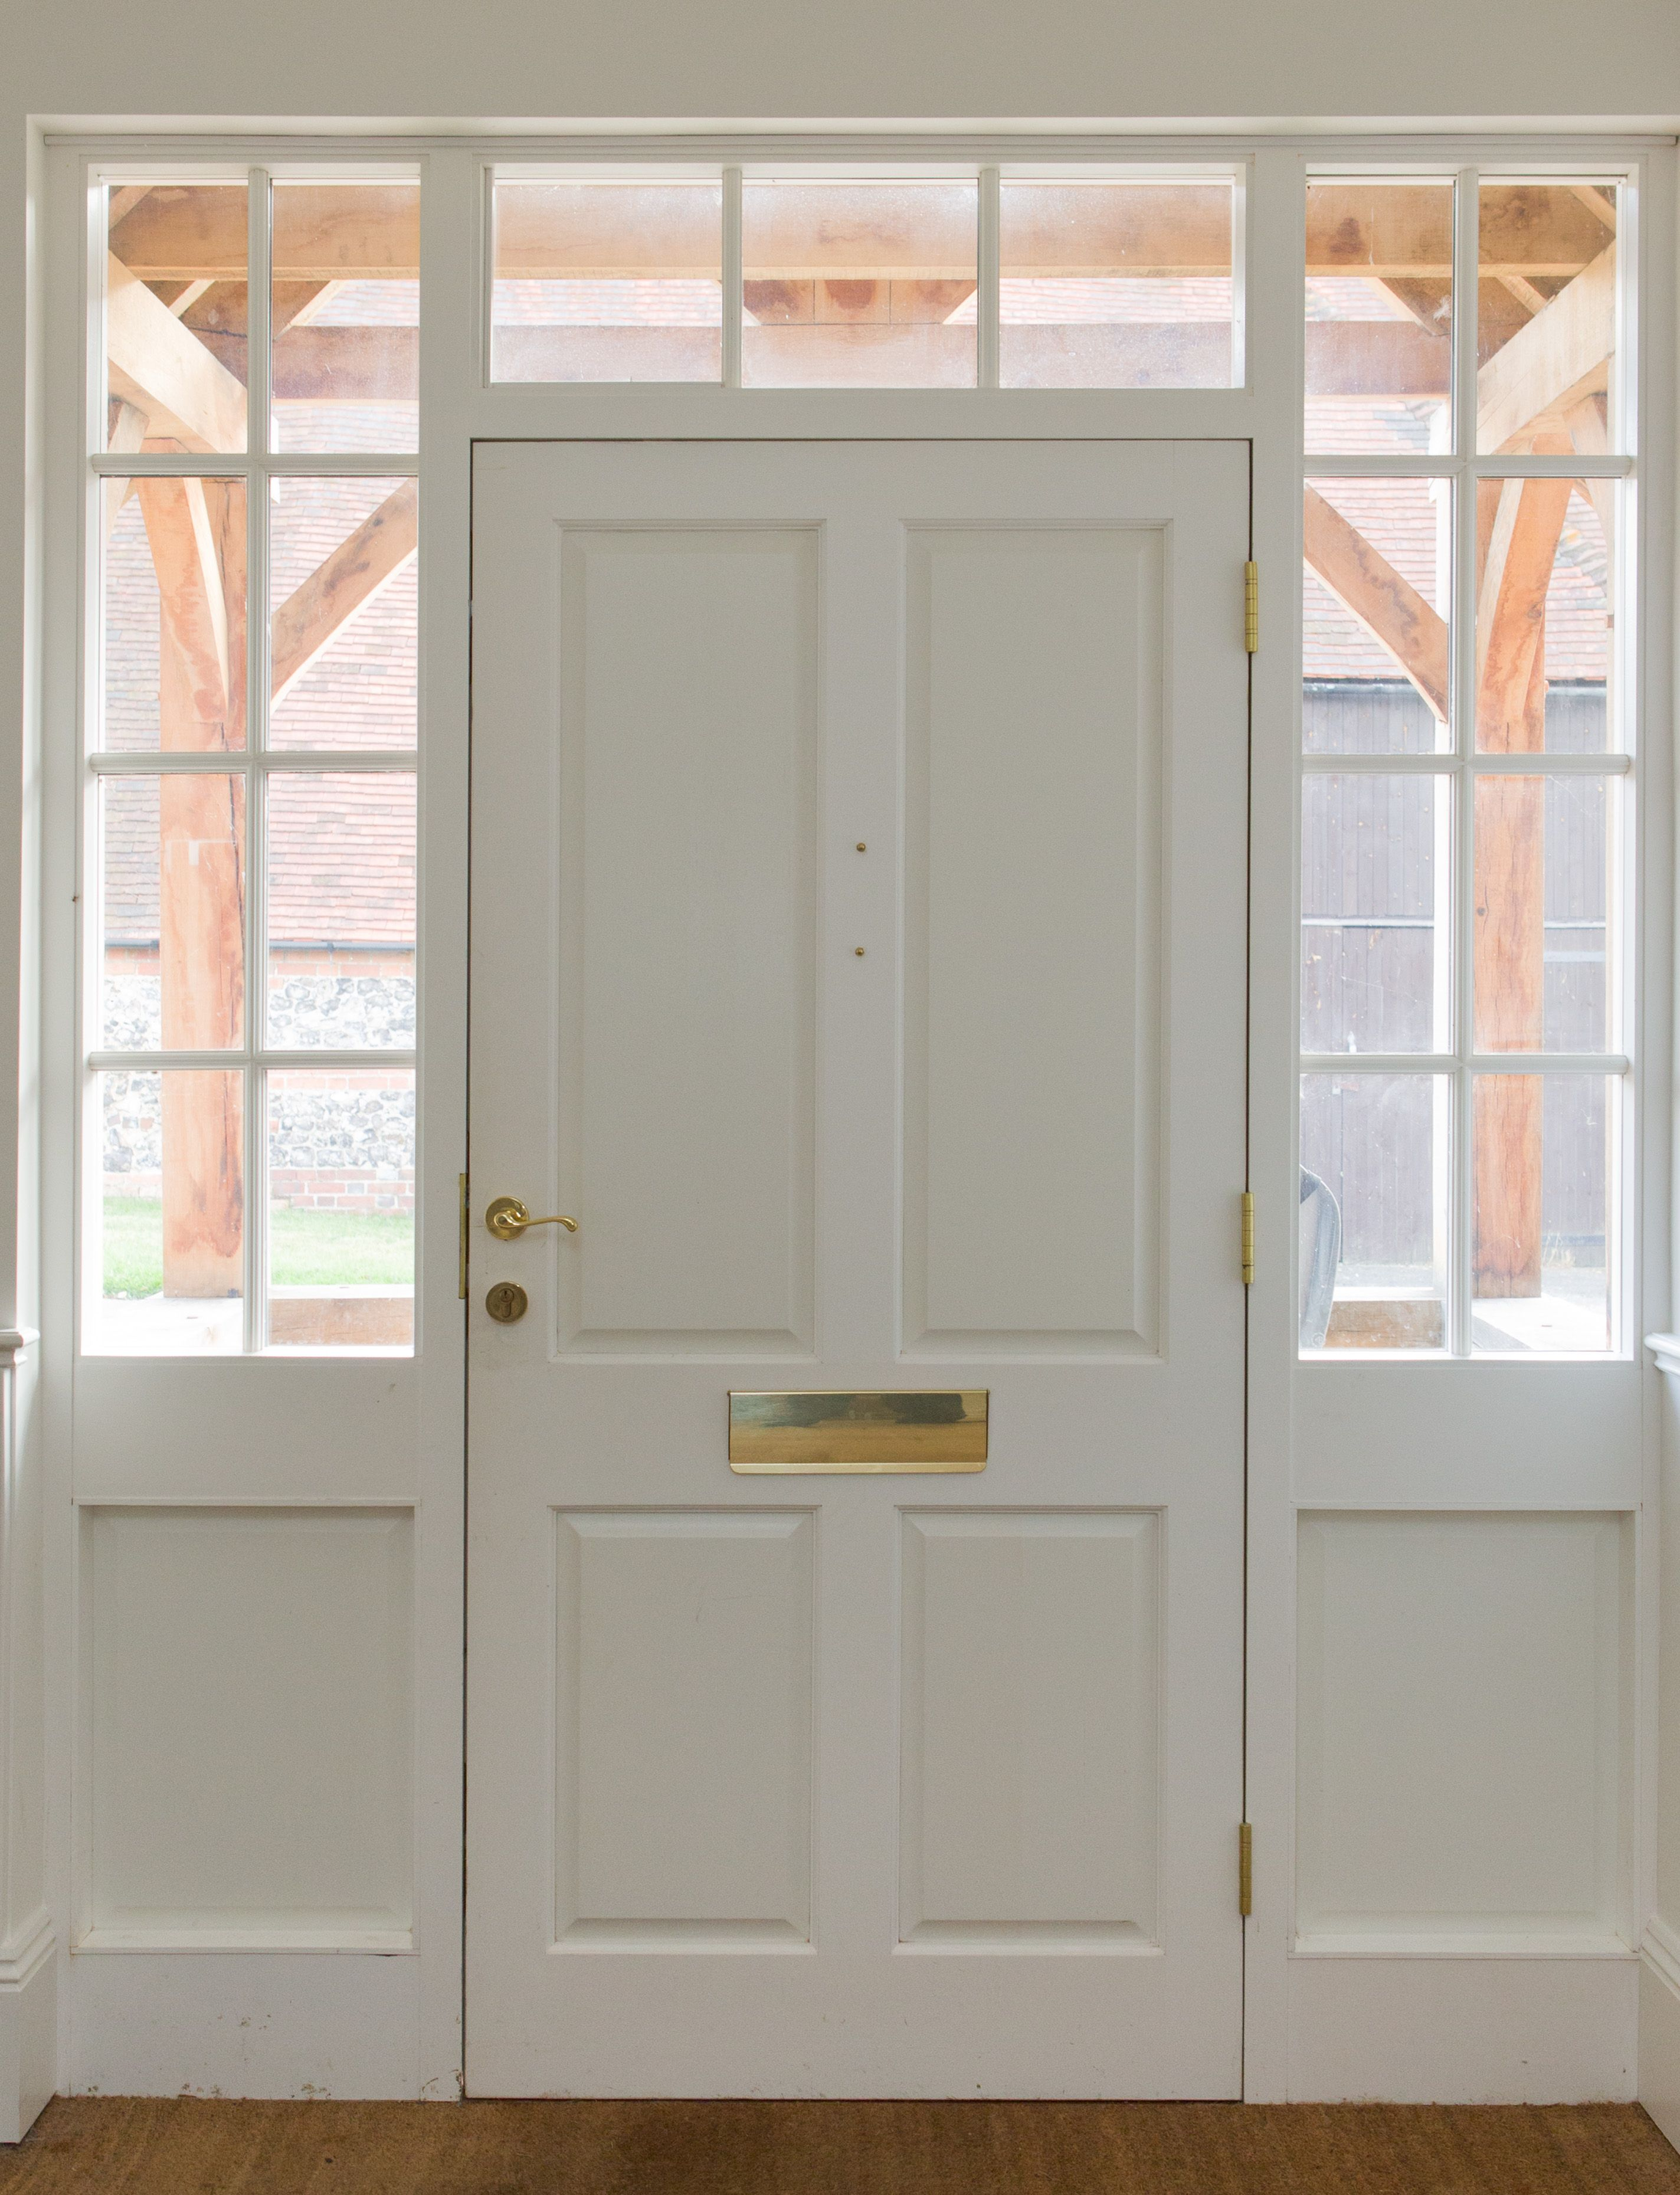 Traditional Four Panel Front Door With Part Glazed Side Lights